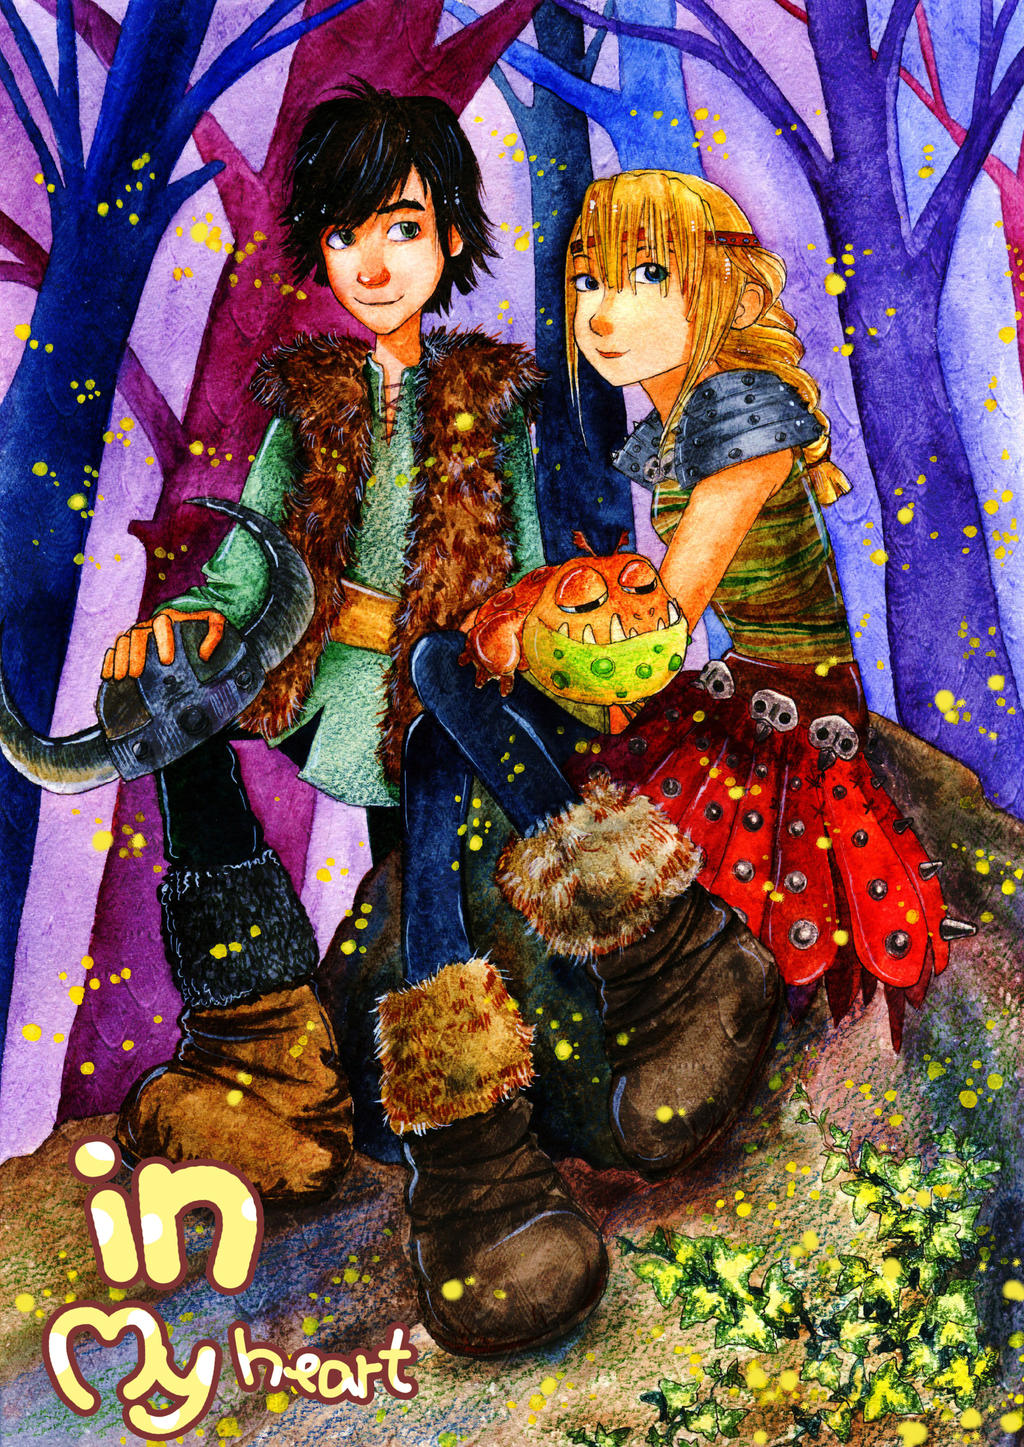 Hiccup And Astrid On The Fireflies Glade By Mizuho Sensei